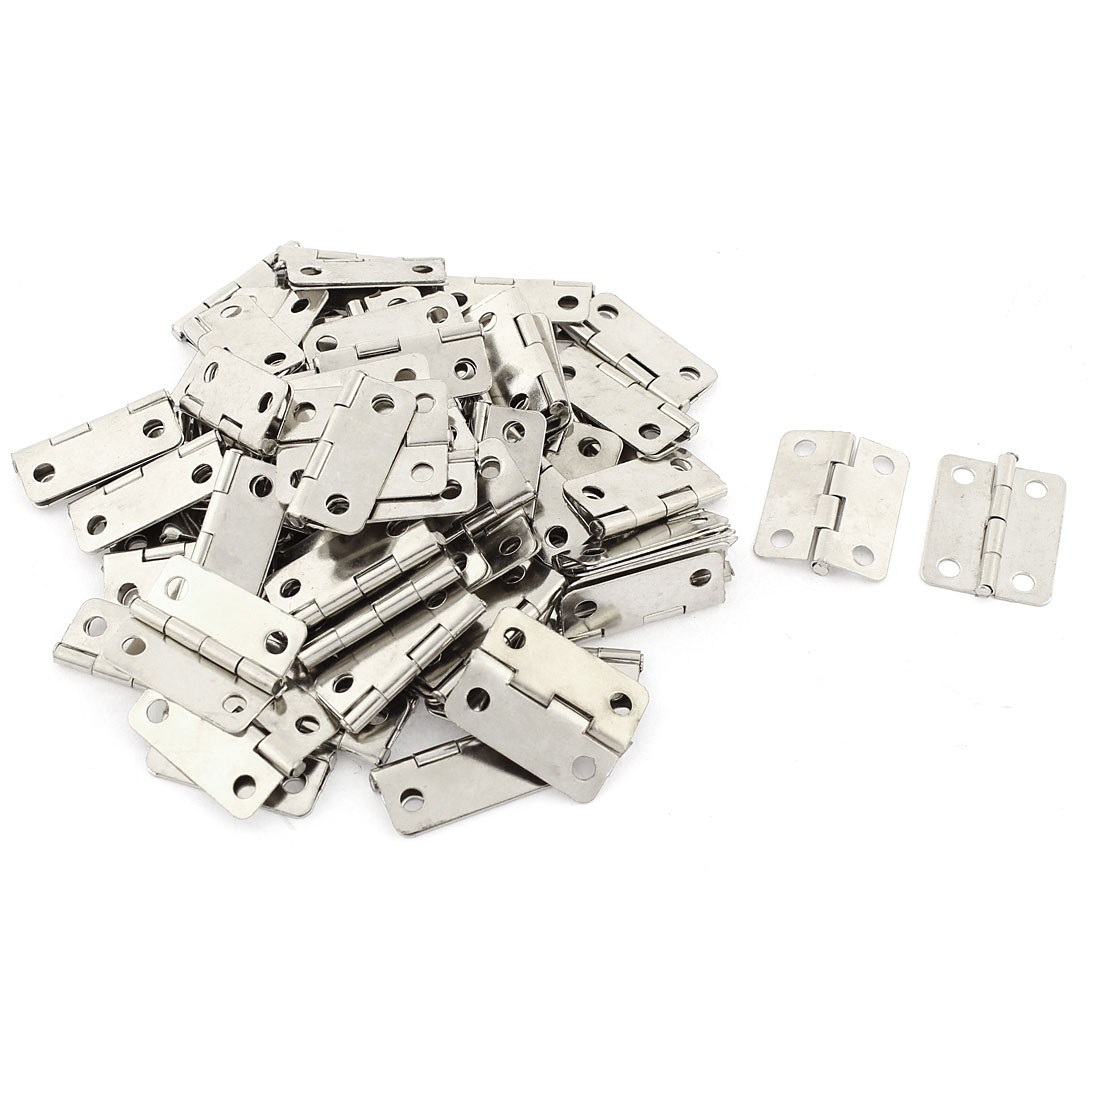 Showcase Silver Tone 4 Screw Holes Rotatable Folding Door Hinges 76 Pcs